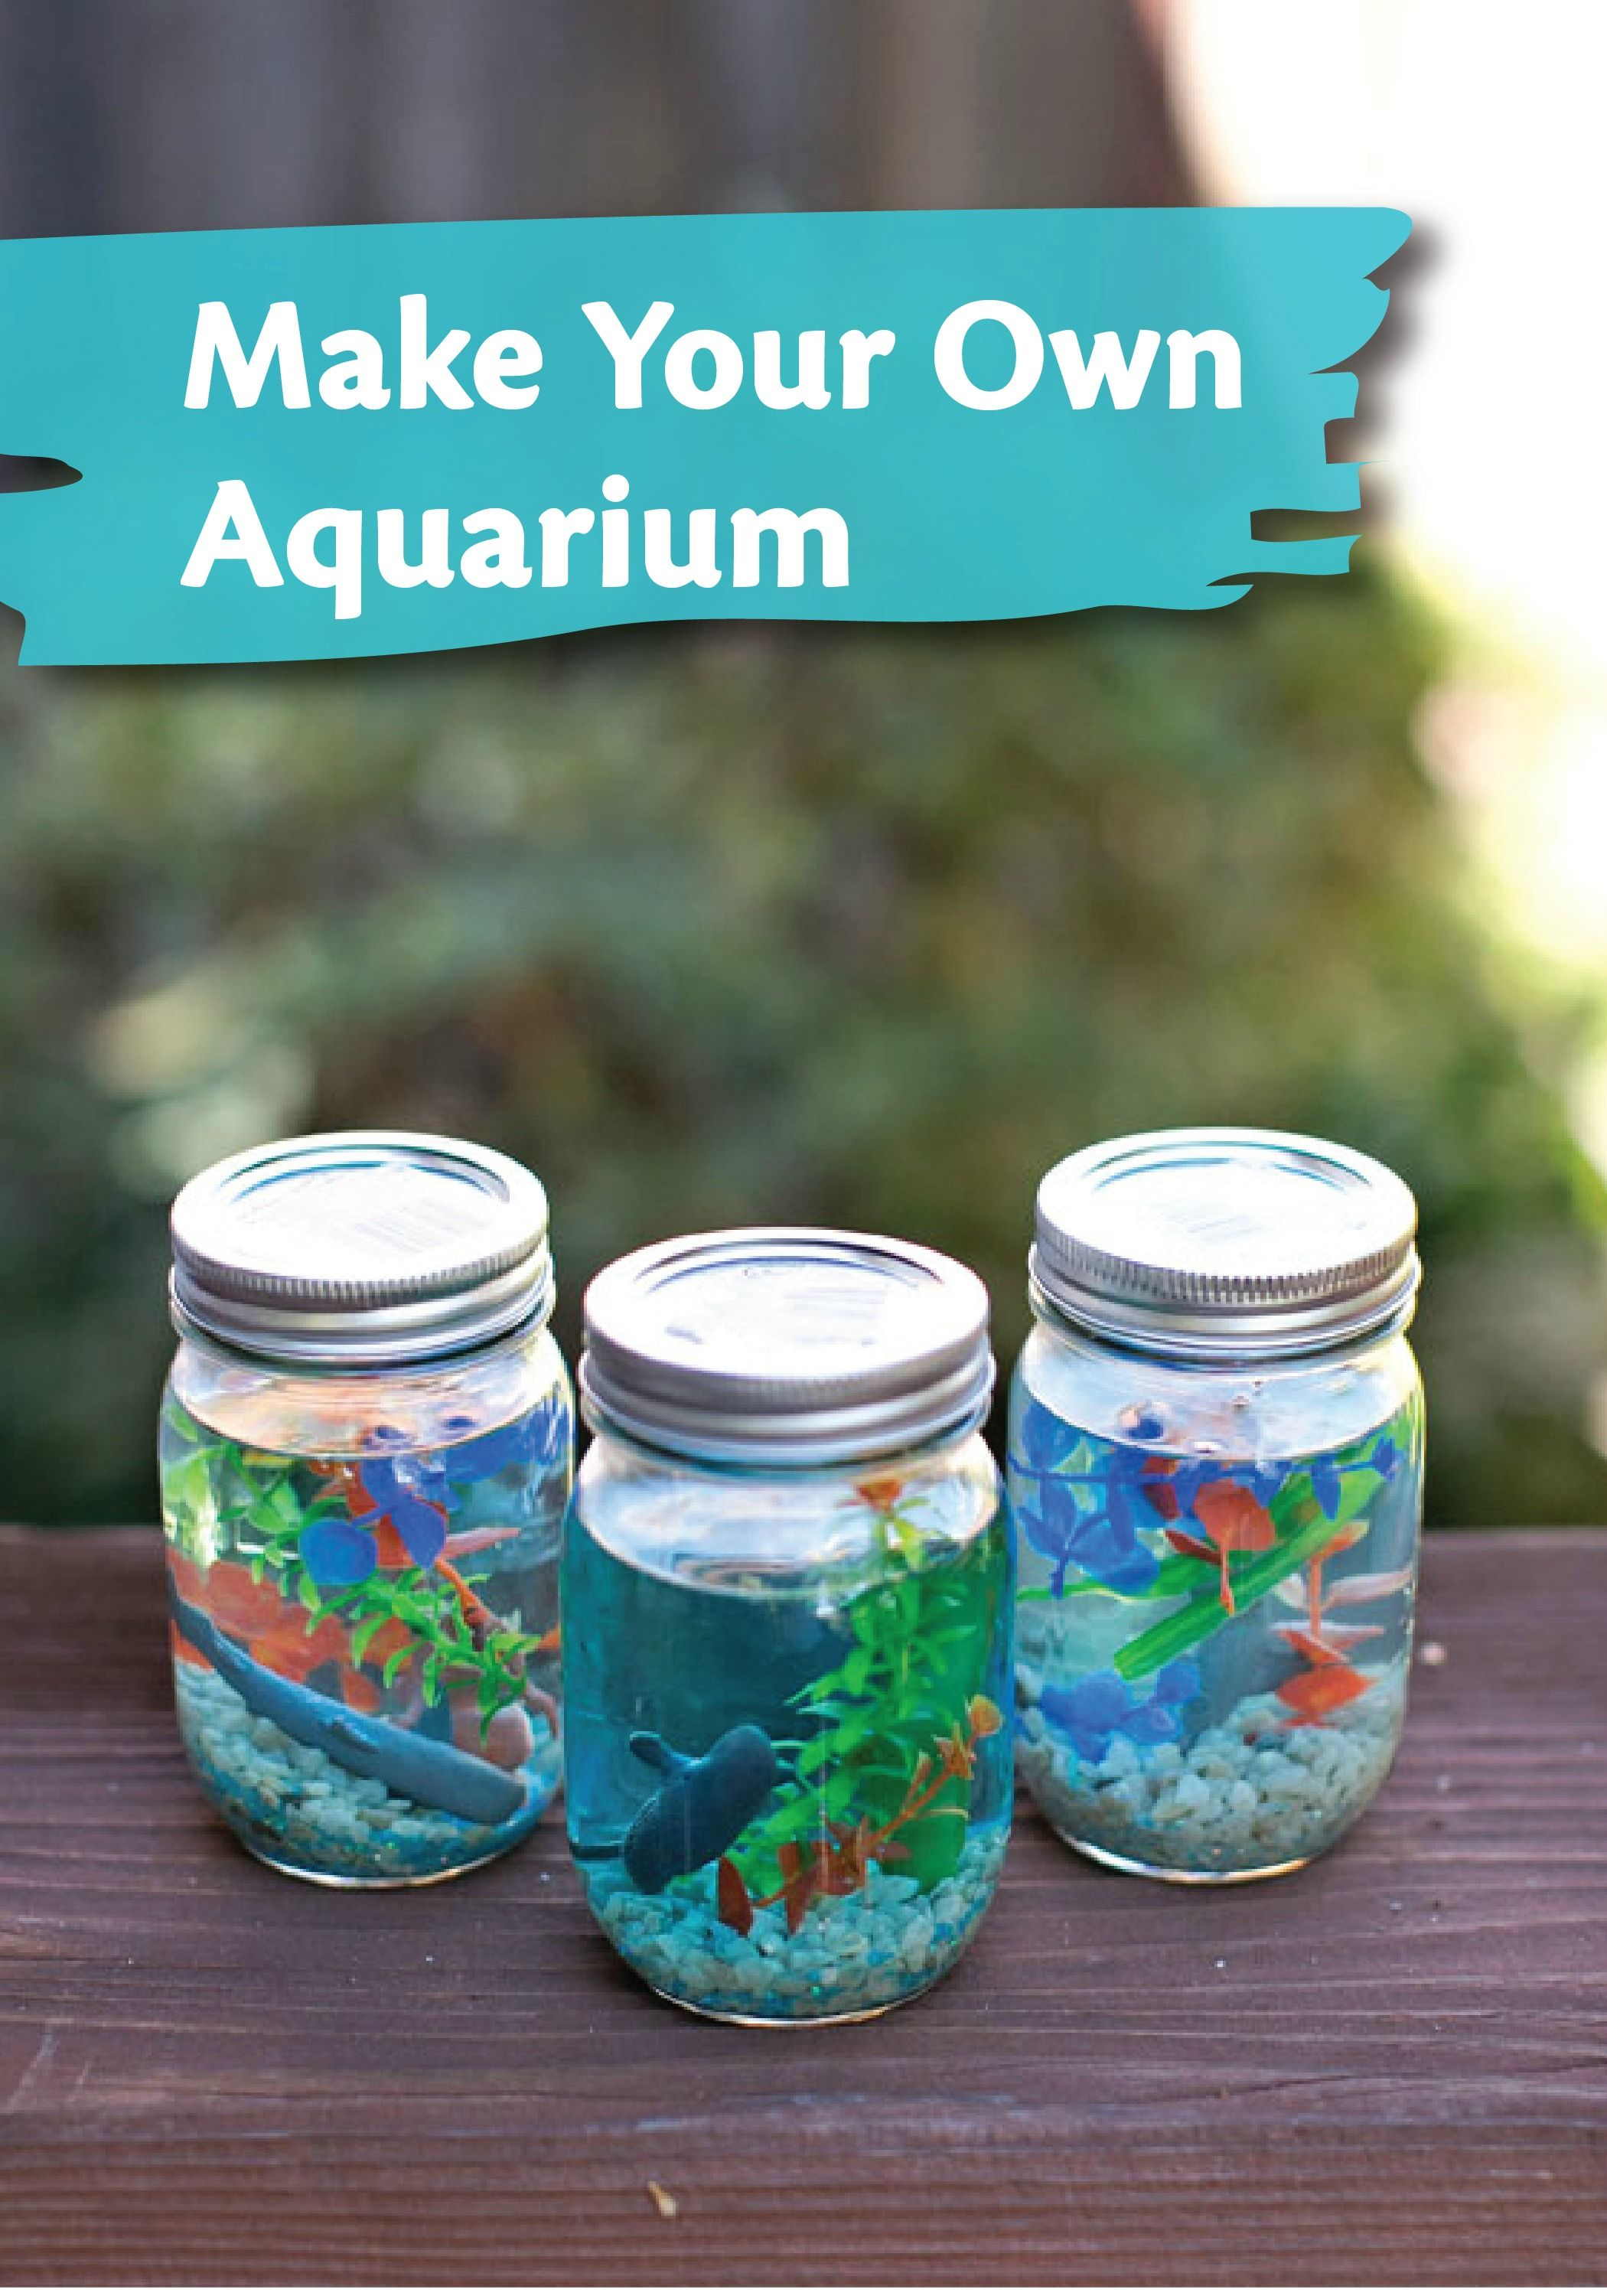 Make This Adorable Mason Jar Aquarium With Your Kids Small Cute Craft Is